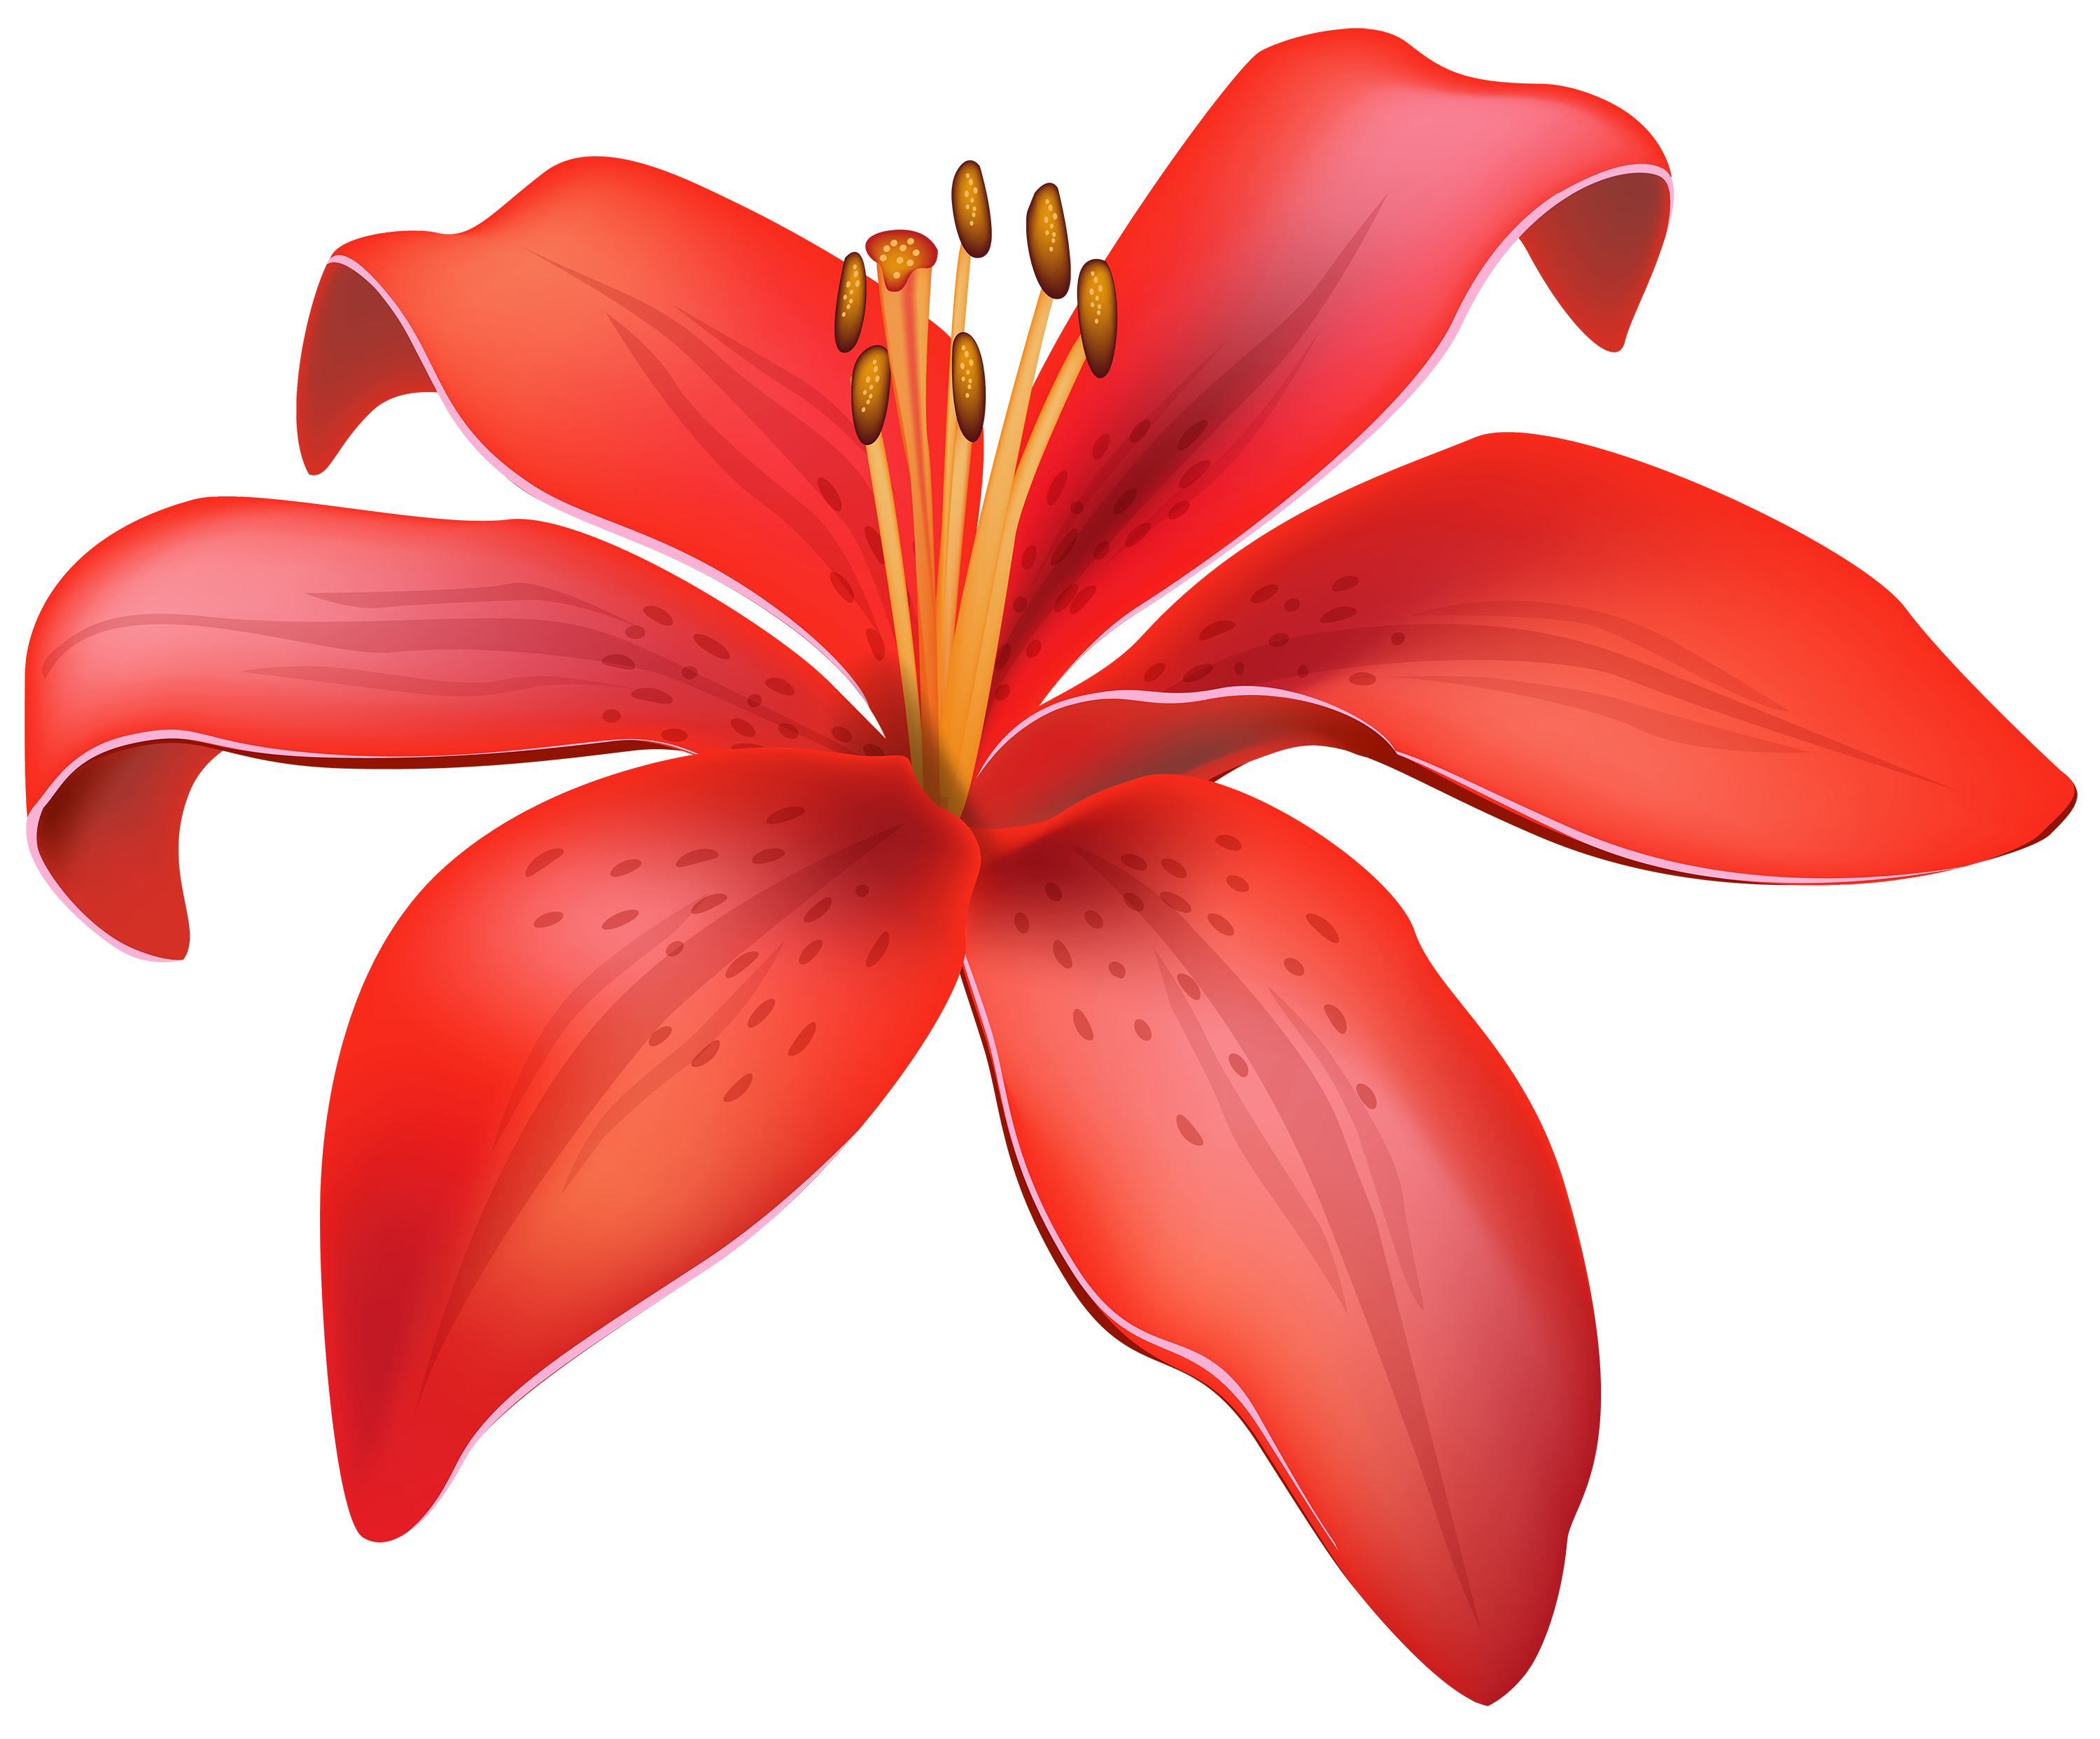 Flowers red lily flower. Treasure clipart magnificent